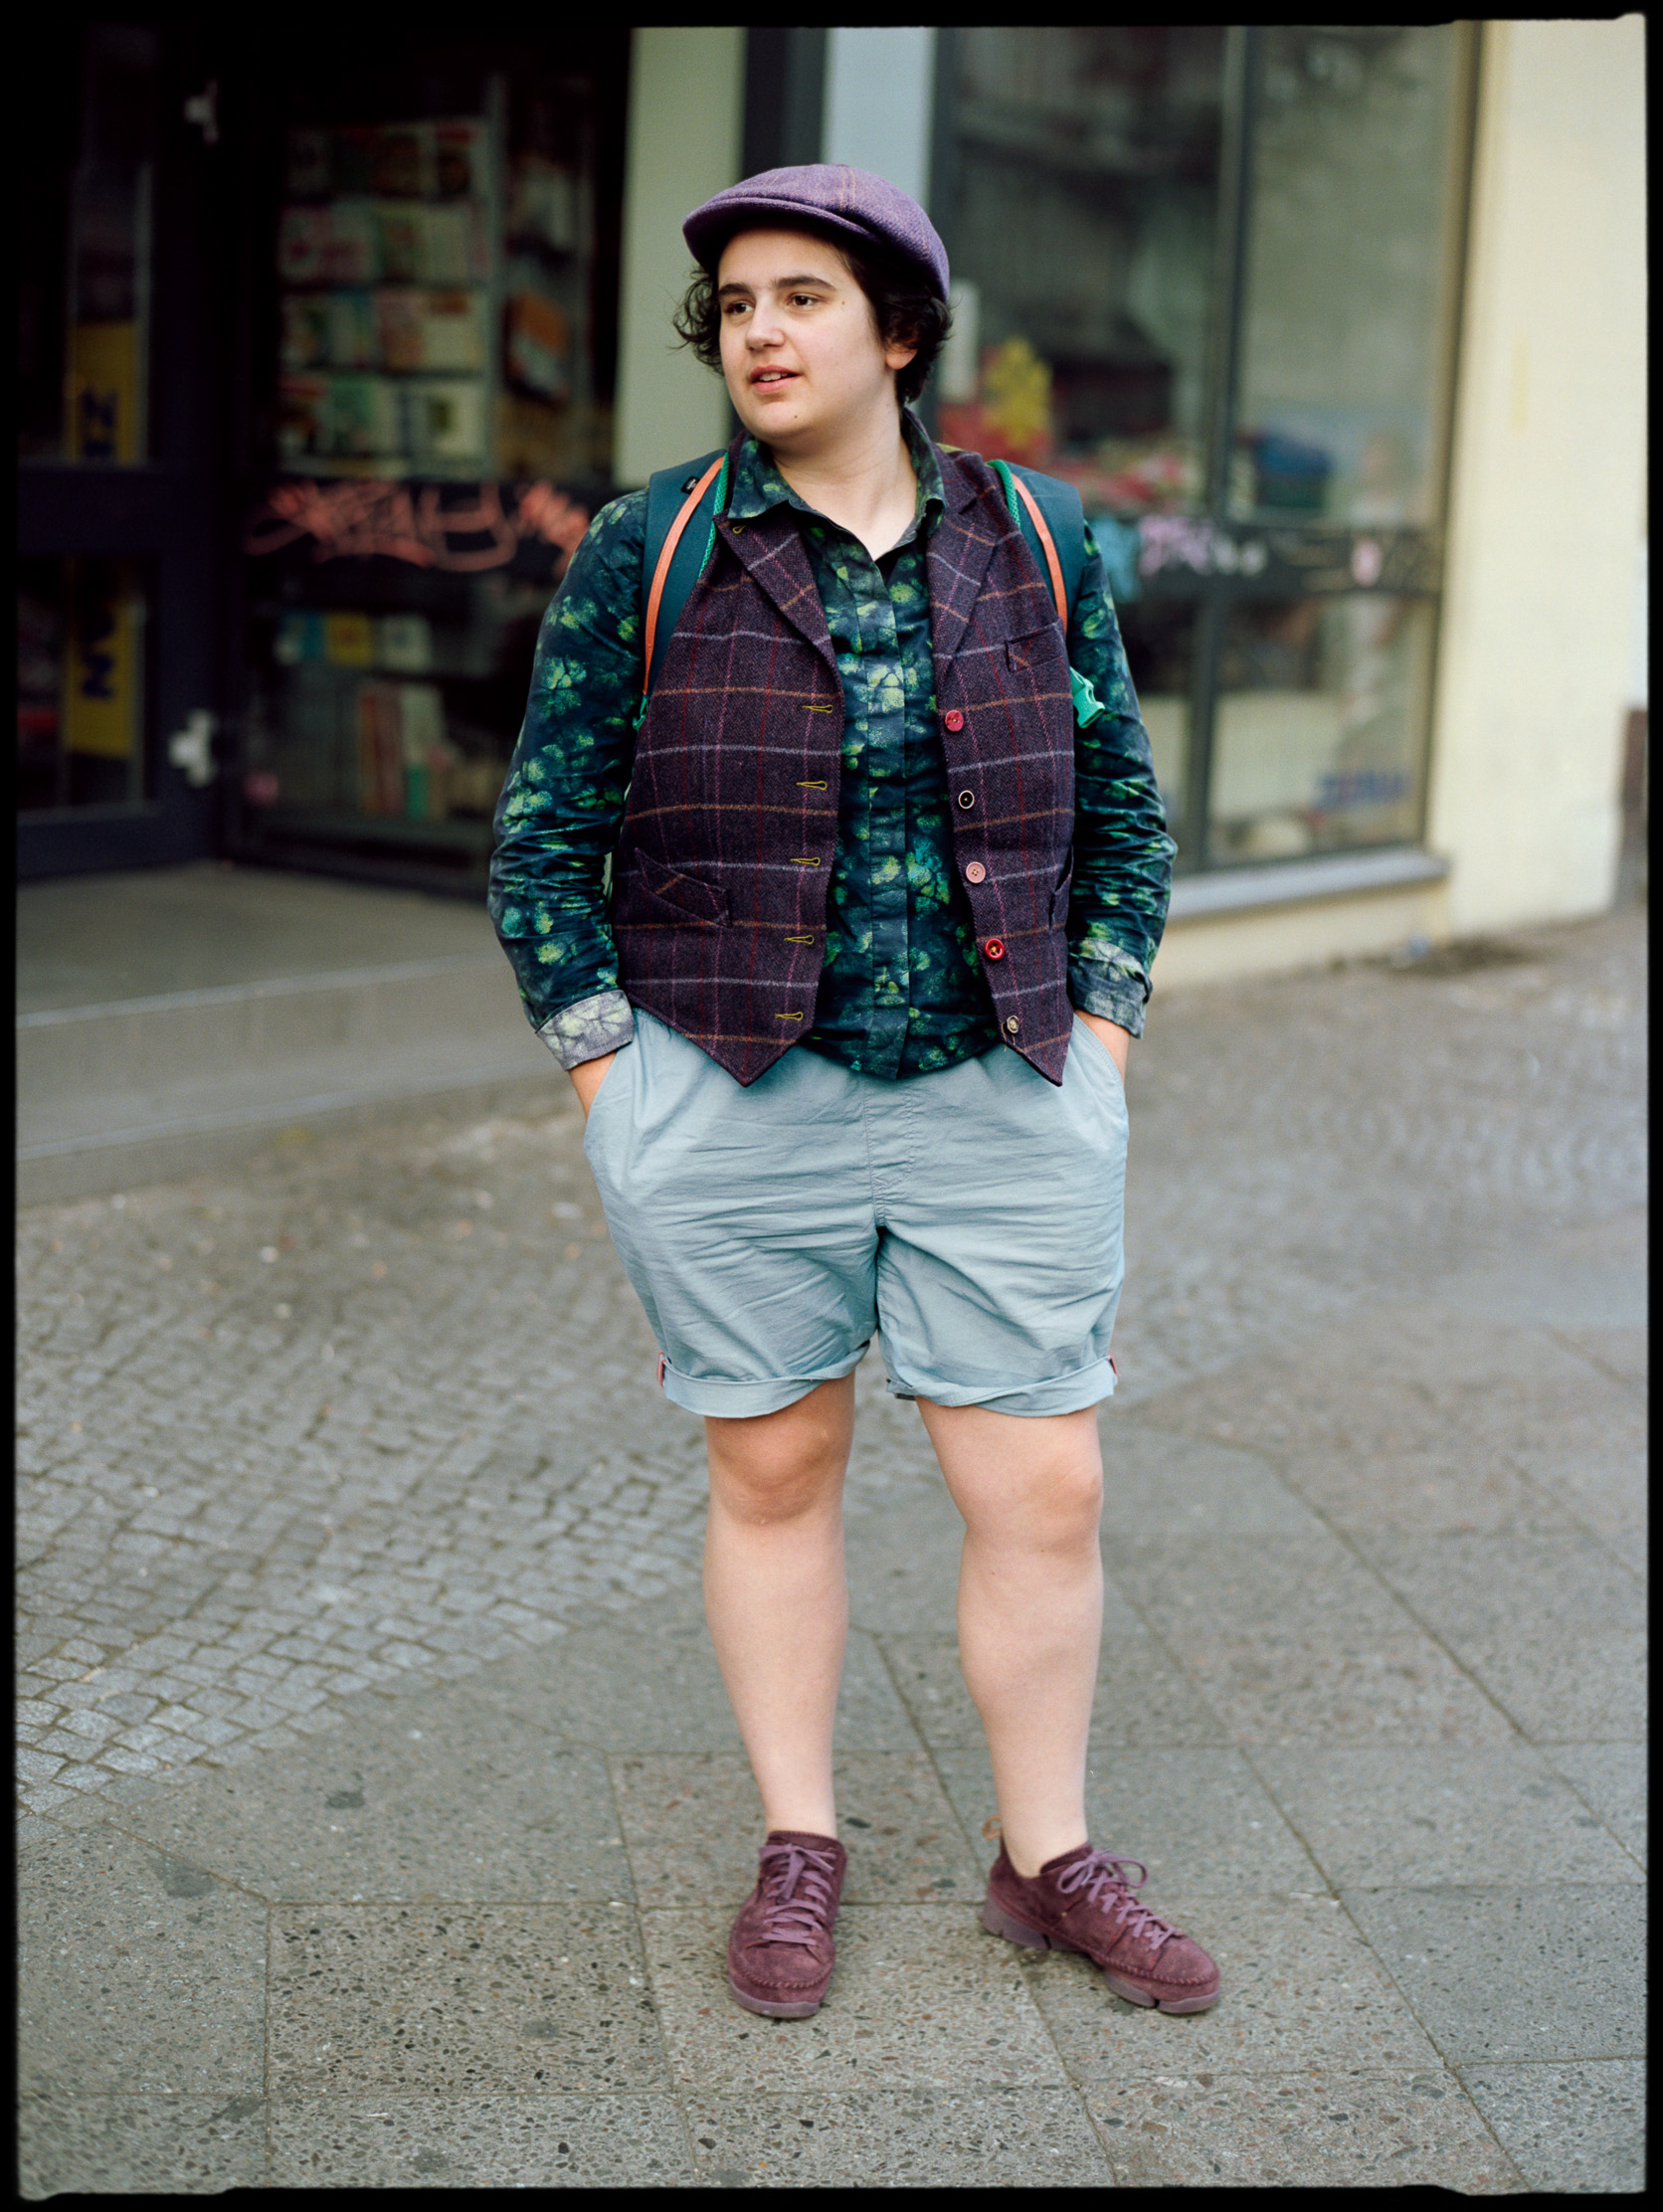 Berlin street style, analog photography